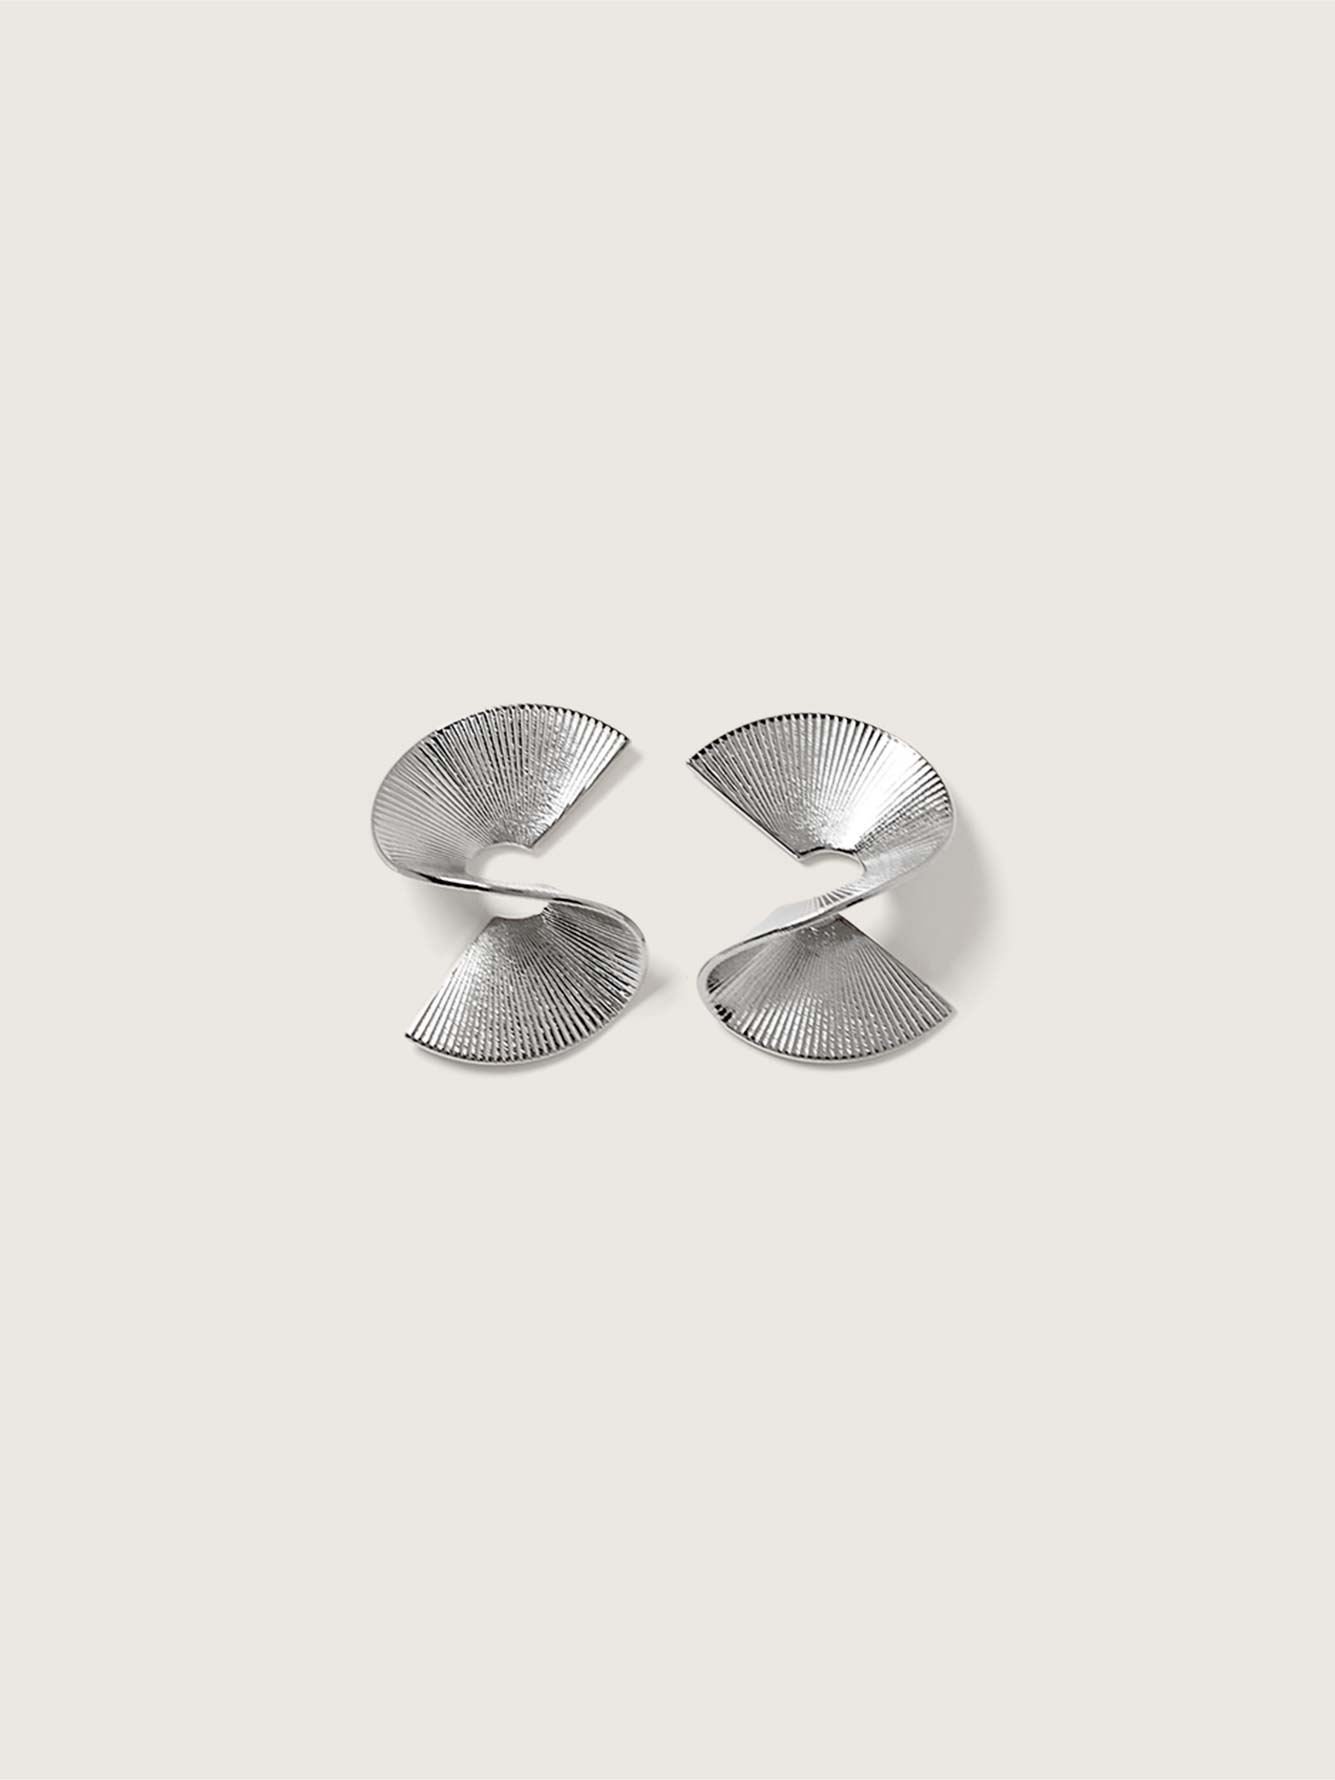 14K Plated Solaware Stud Earrings - Biko